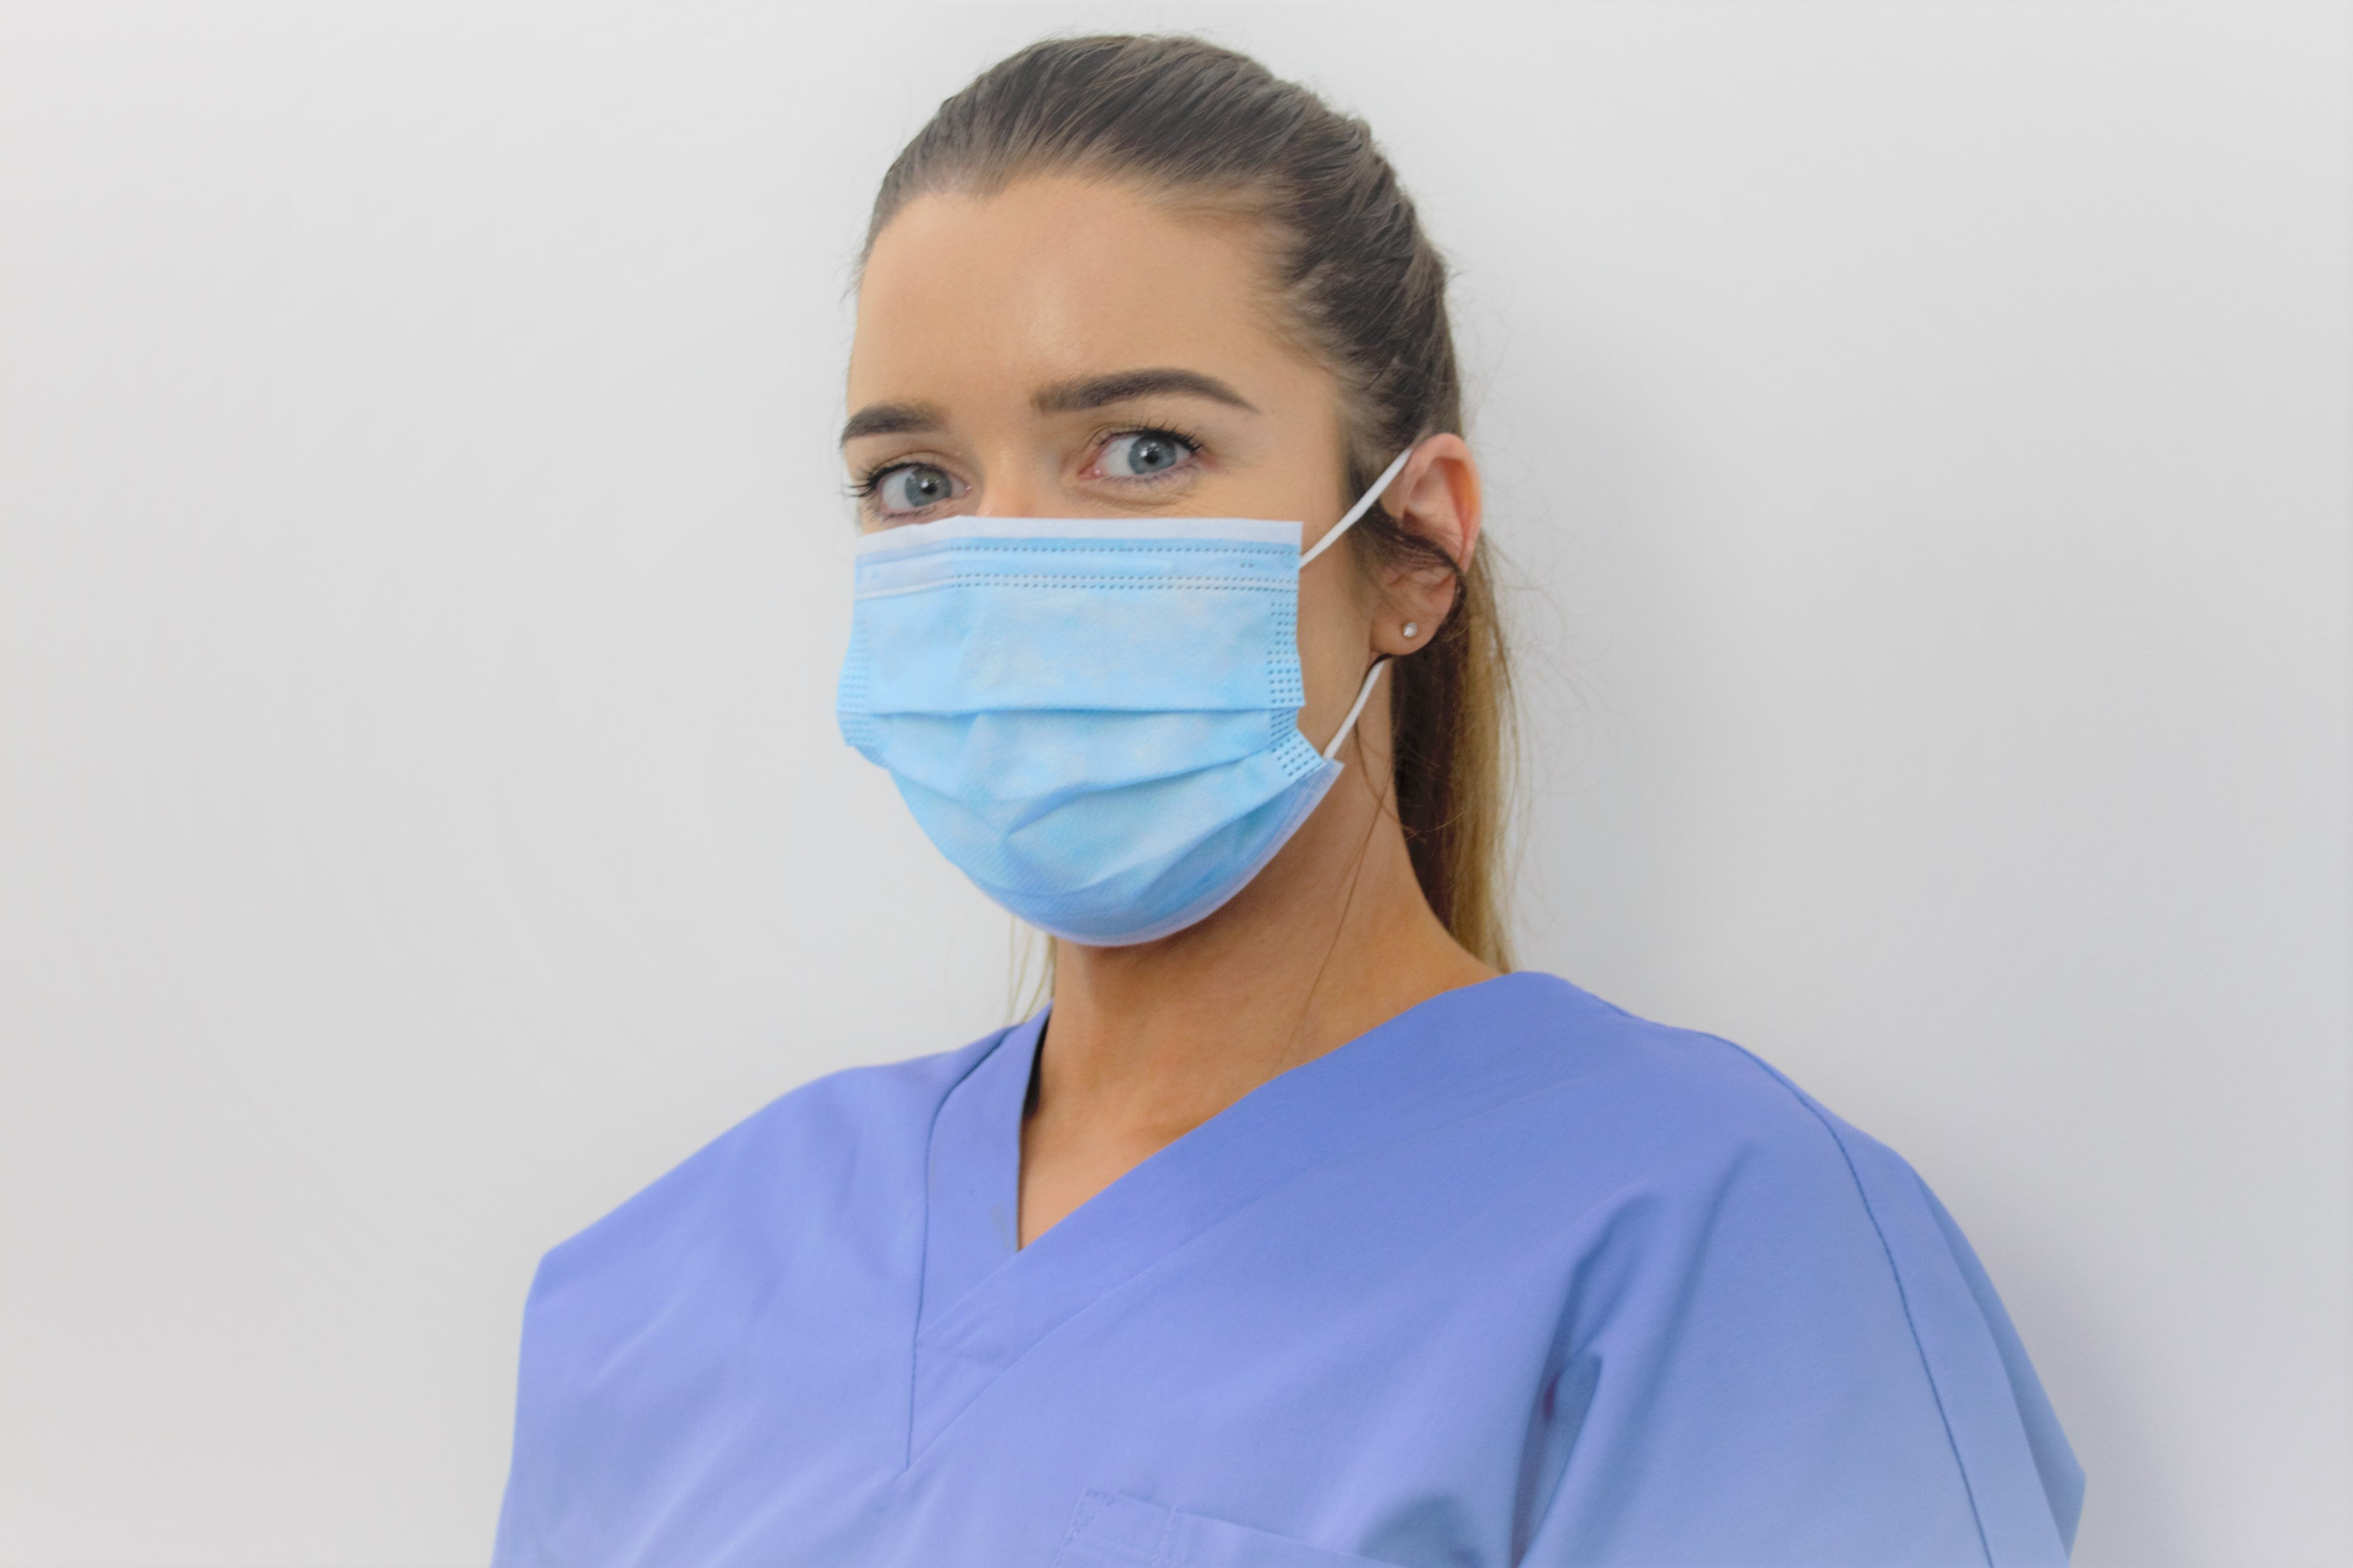 NURSING HOME OFFER: 3 Boxes of Disposable Surgical Masks (£0.20 per mask)